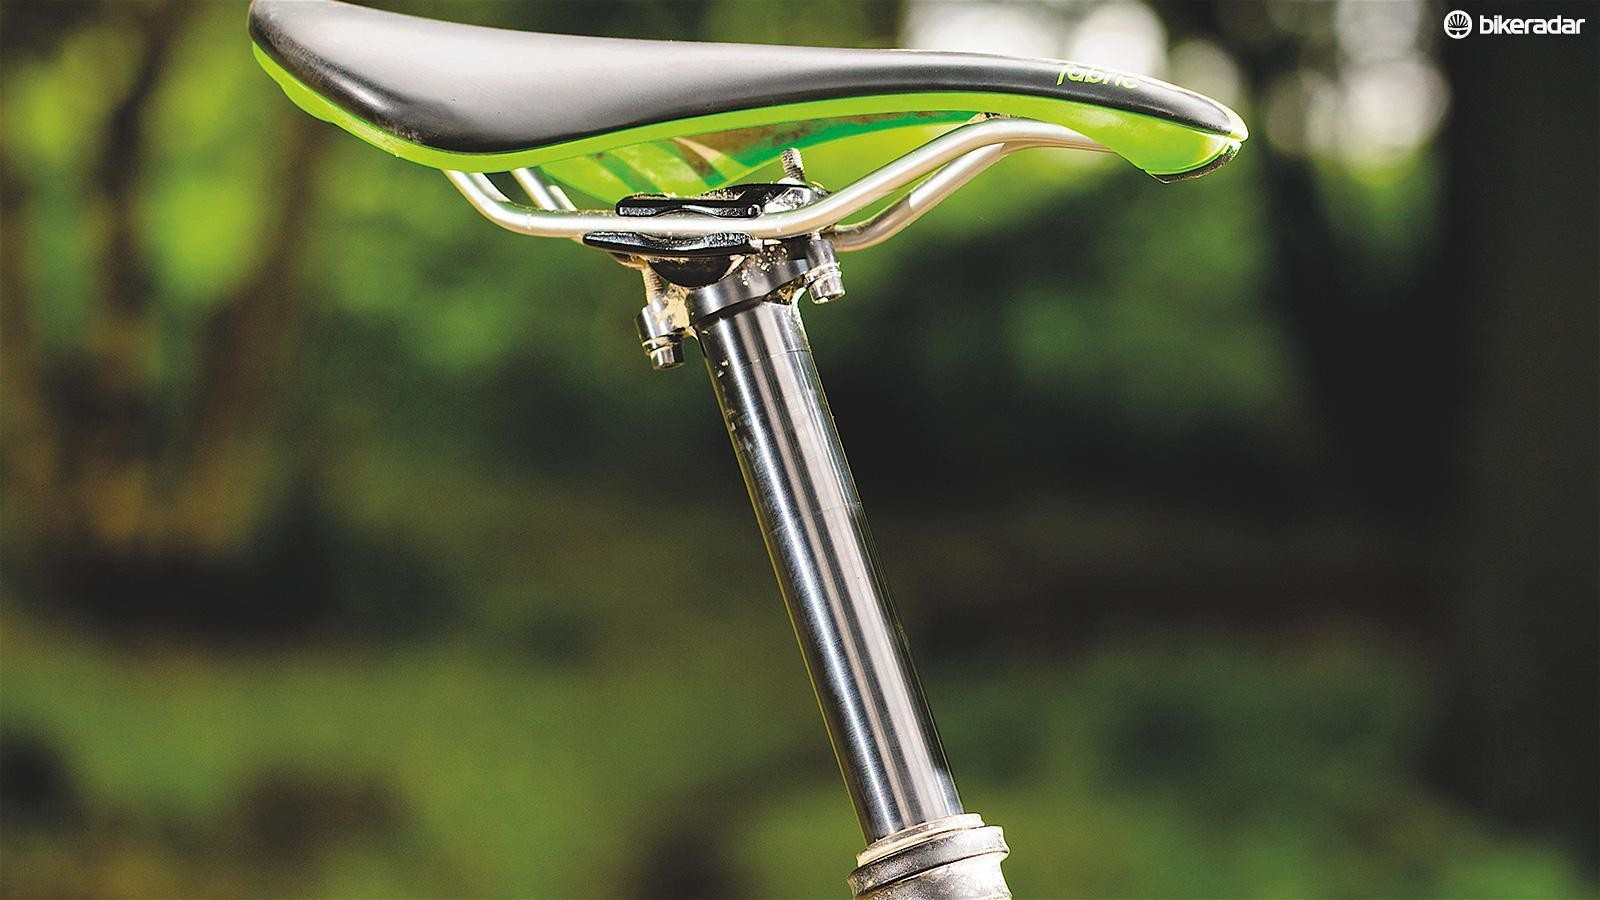 A dropper can transform your riding. The Fox Transfer has impressed us with with its reliability